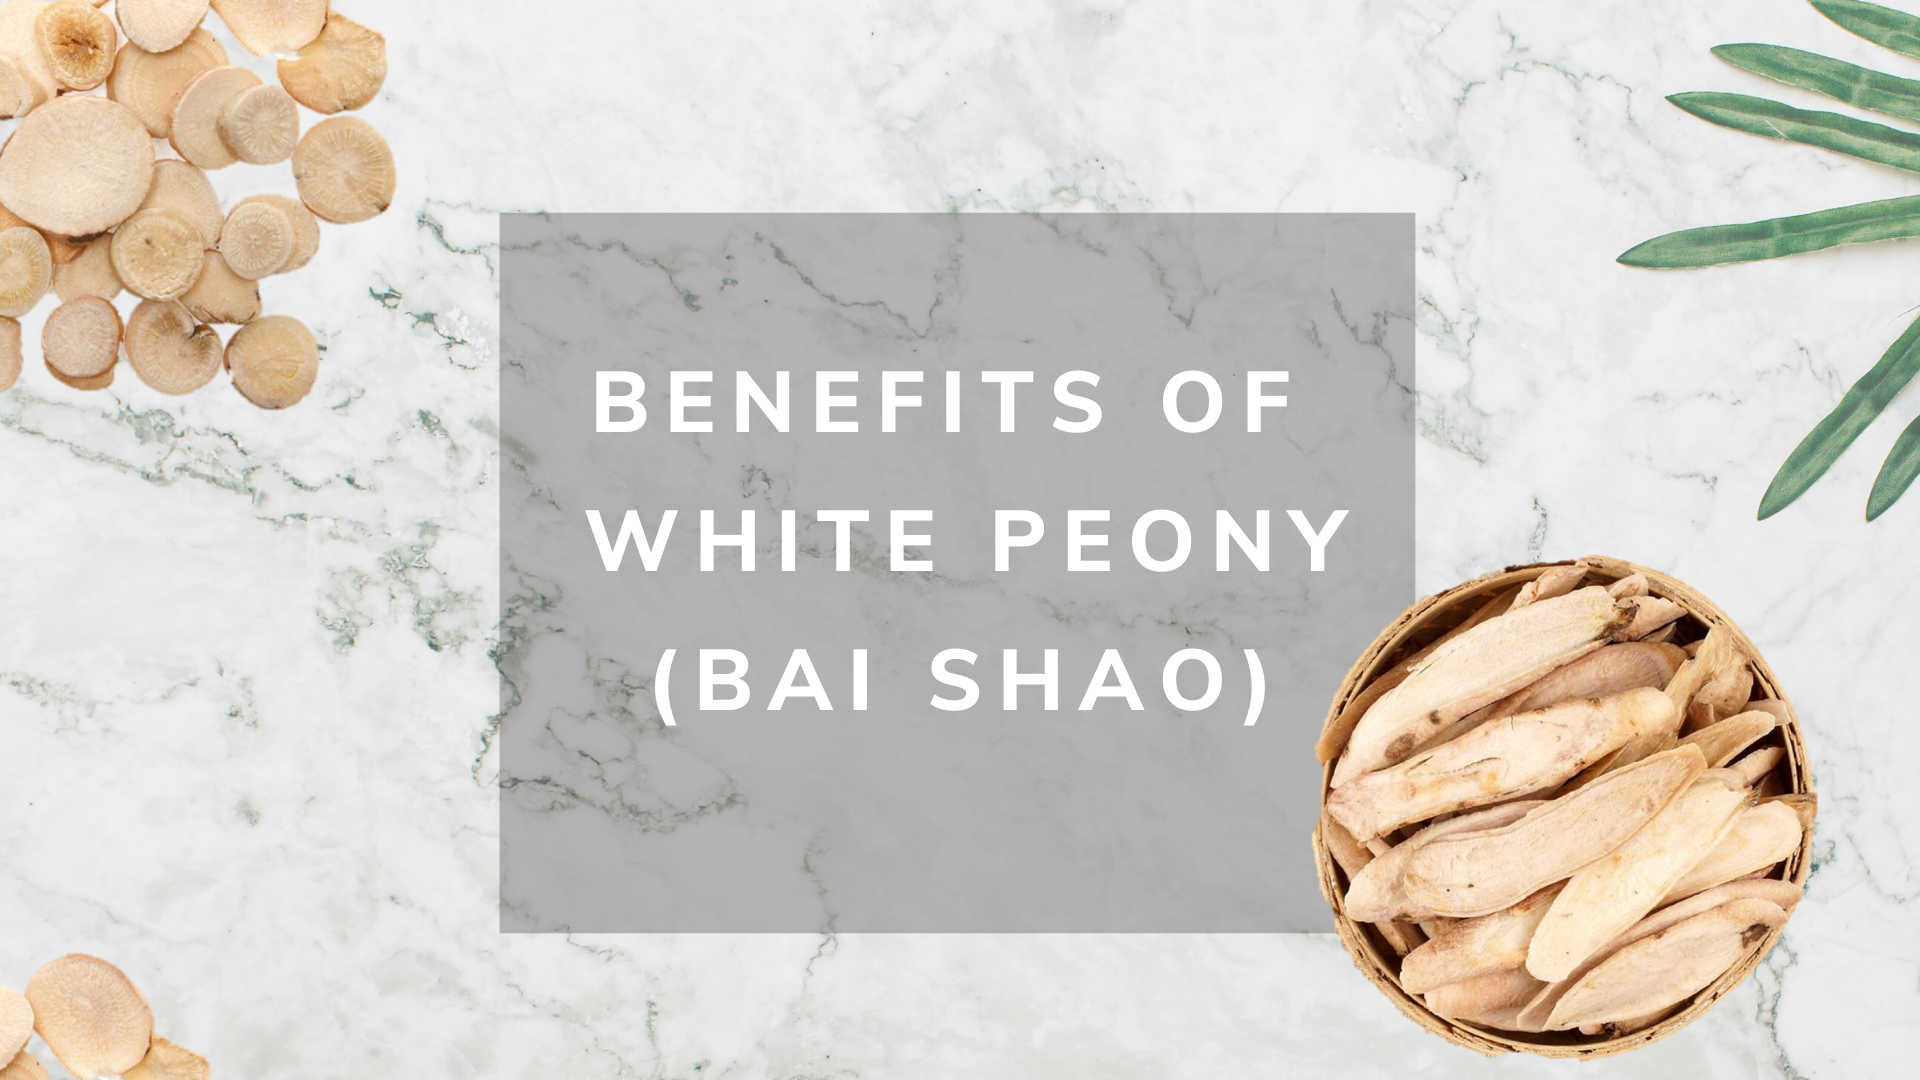 Benefits of White Peony ( Bai Saho )